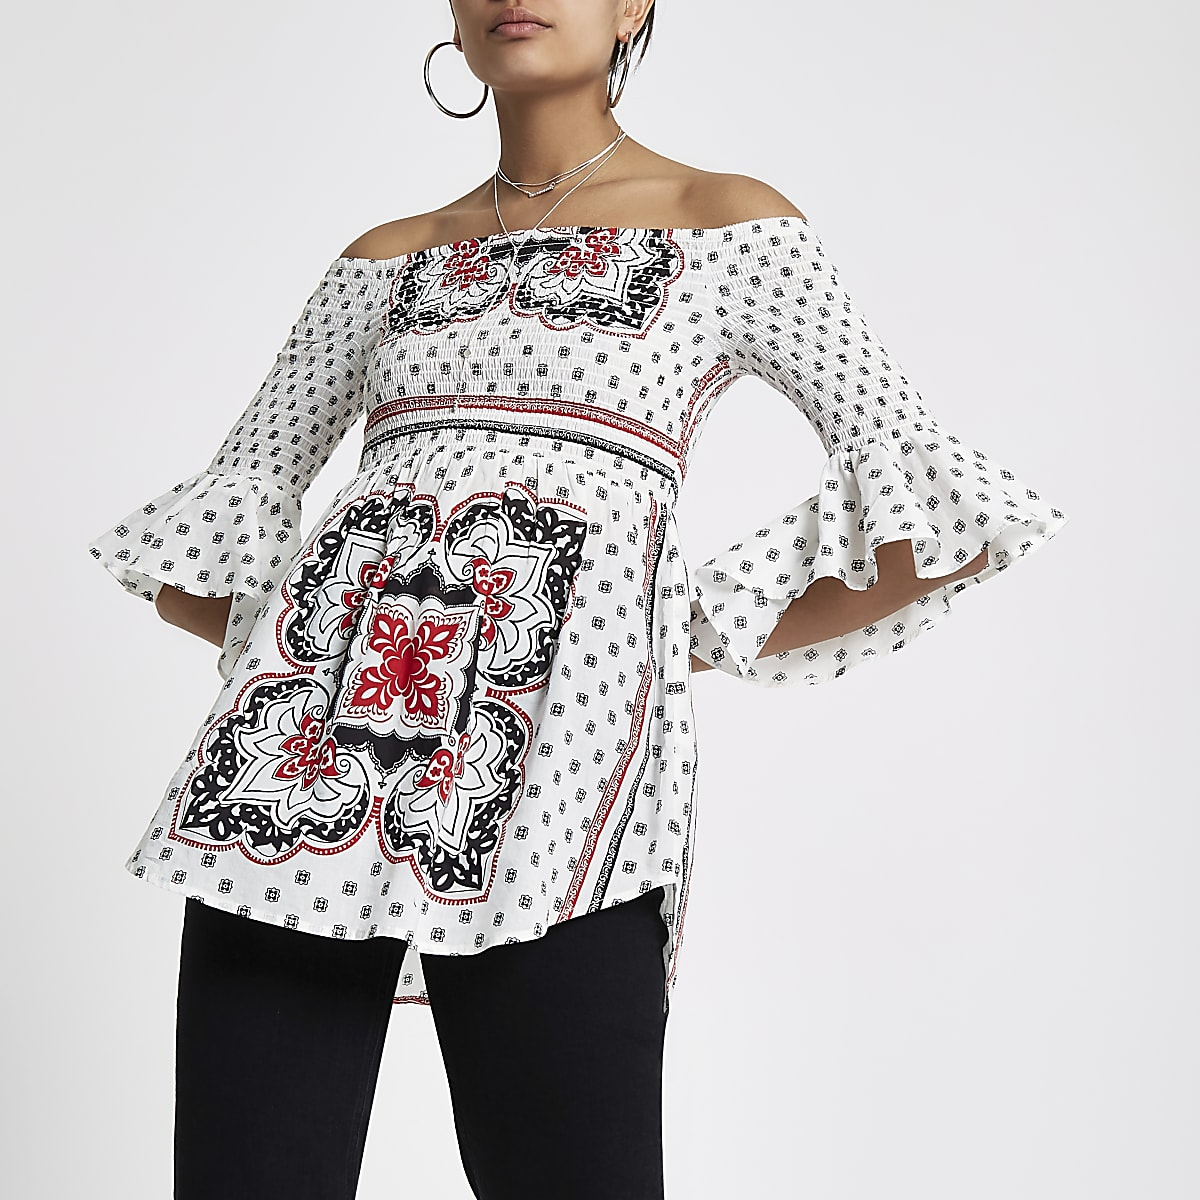 be85be2b8b White paisley print bell sleeve top - Bardot   Cold Shoulder Tops - Tops -  women